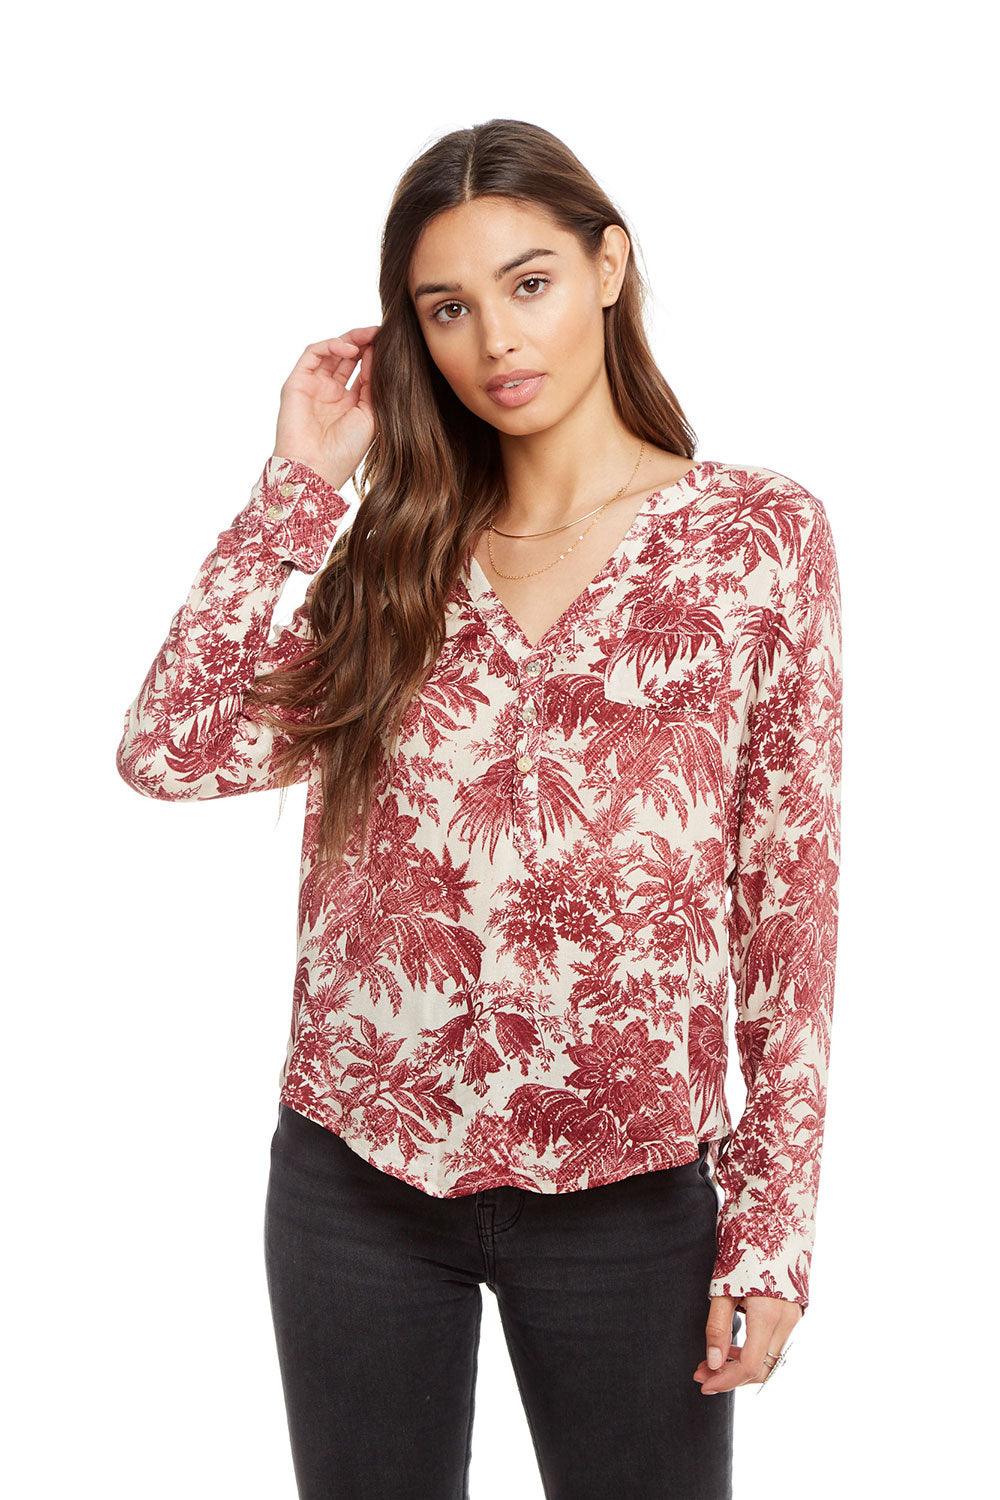 Heirloom Gauze Long Sleeve Shirttail Henley with Pocket WOMENS chaserbrand4.myshopify.com